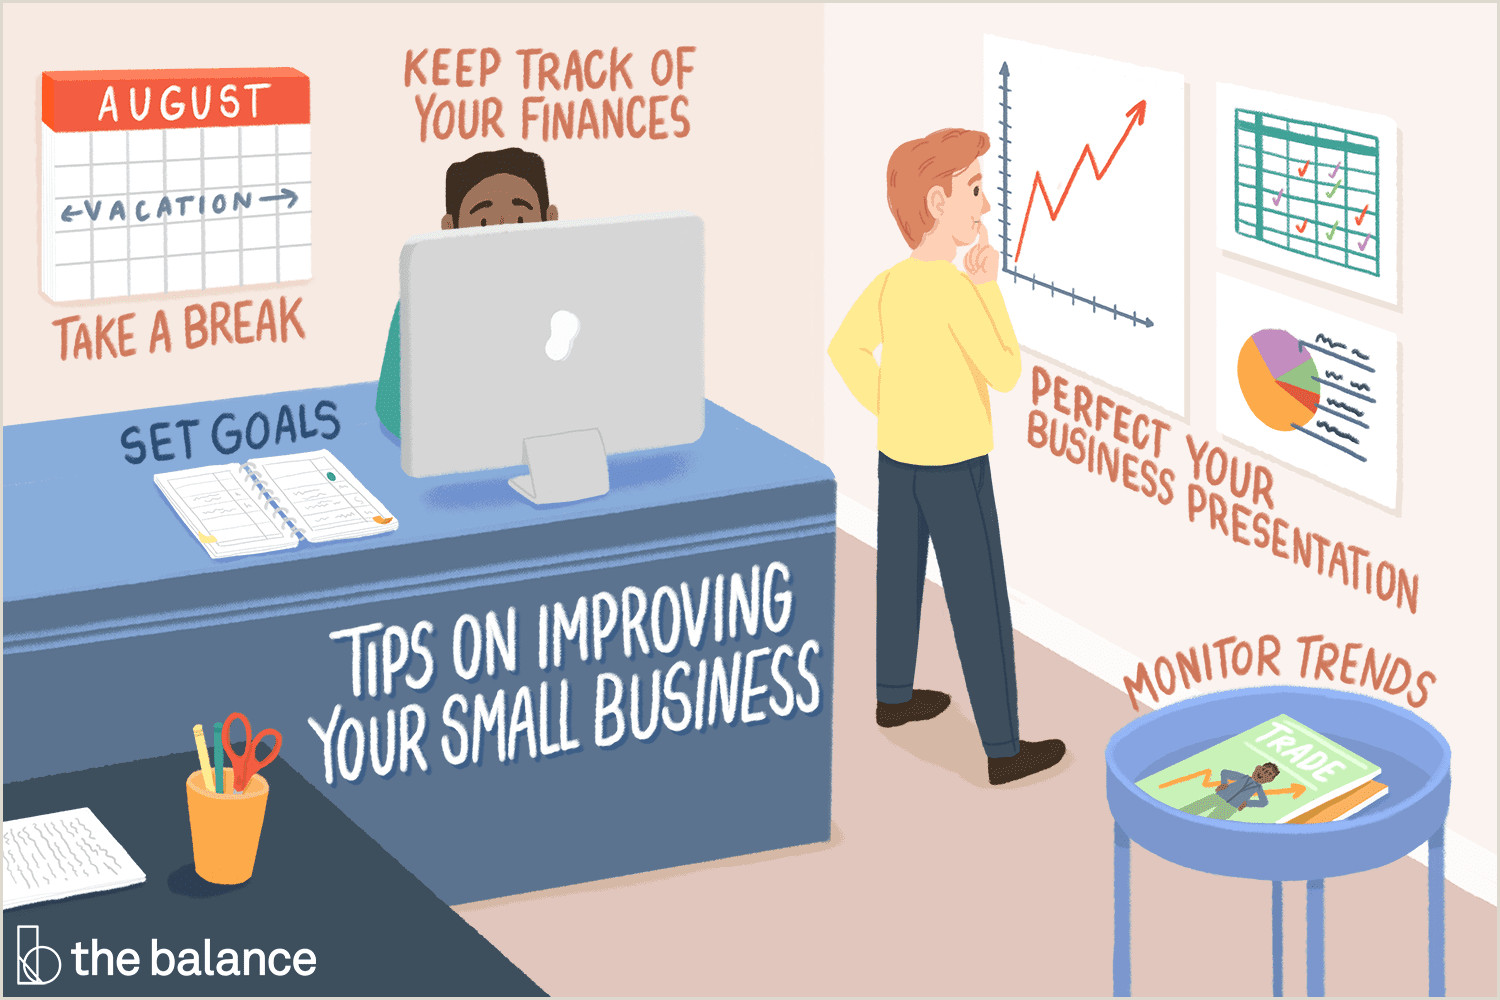 Best Business Cards For Small Business 10 Straightforward Ways To Improve Your Small Business